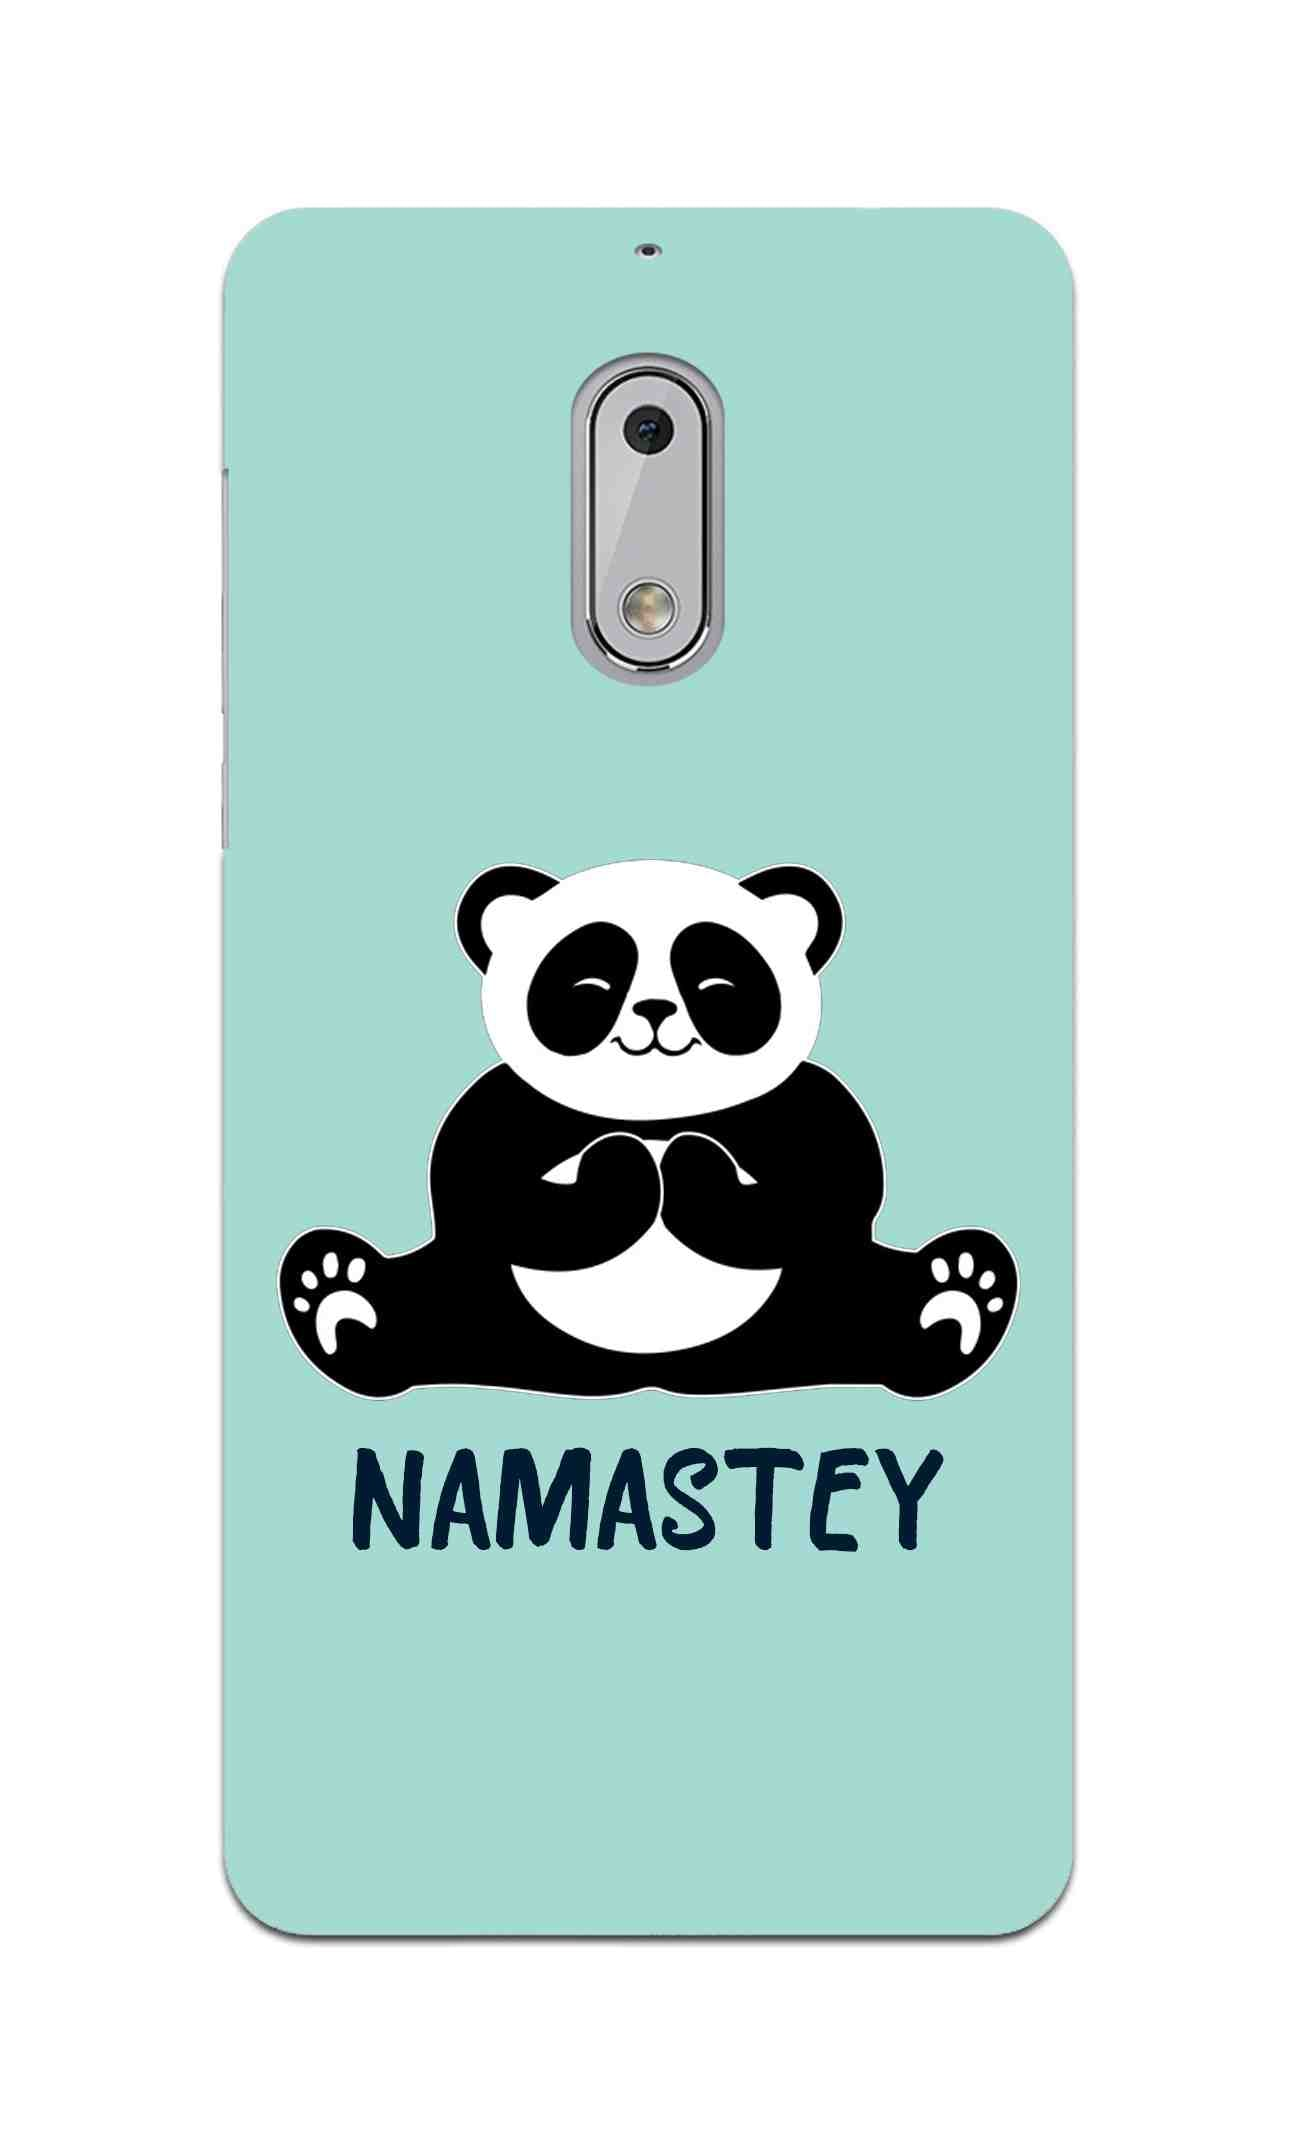 Cute Panda Seying Namastey For Animal Lovers Nokia 6 Mobile Cover Case